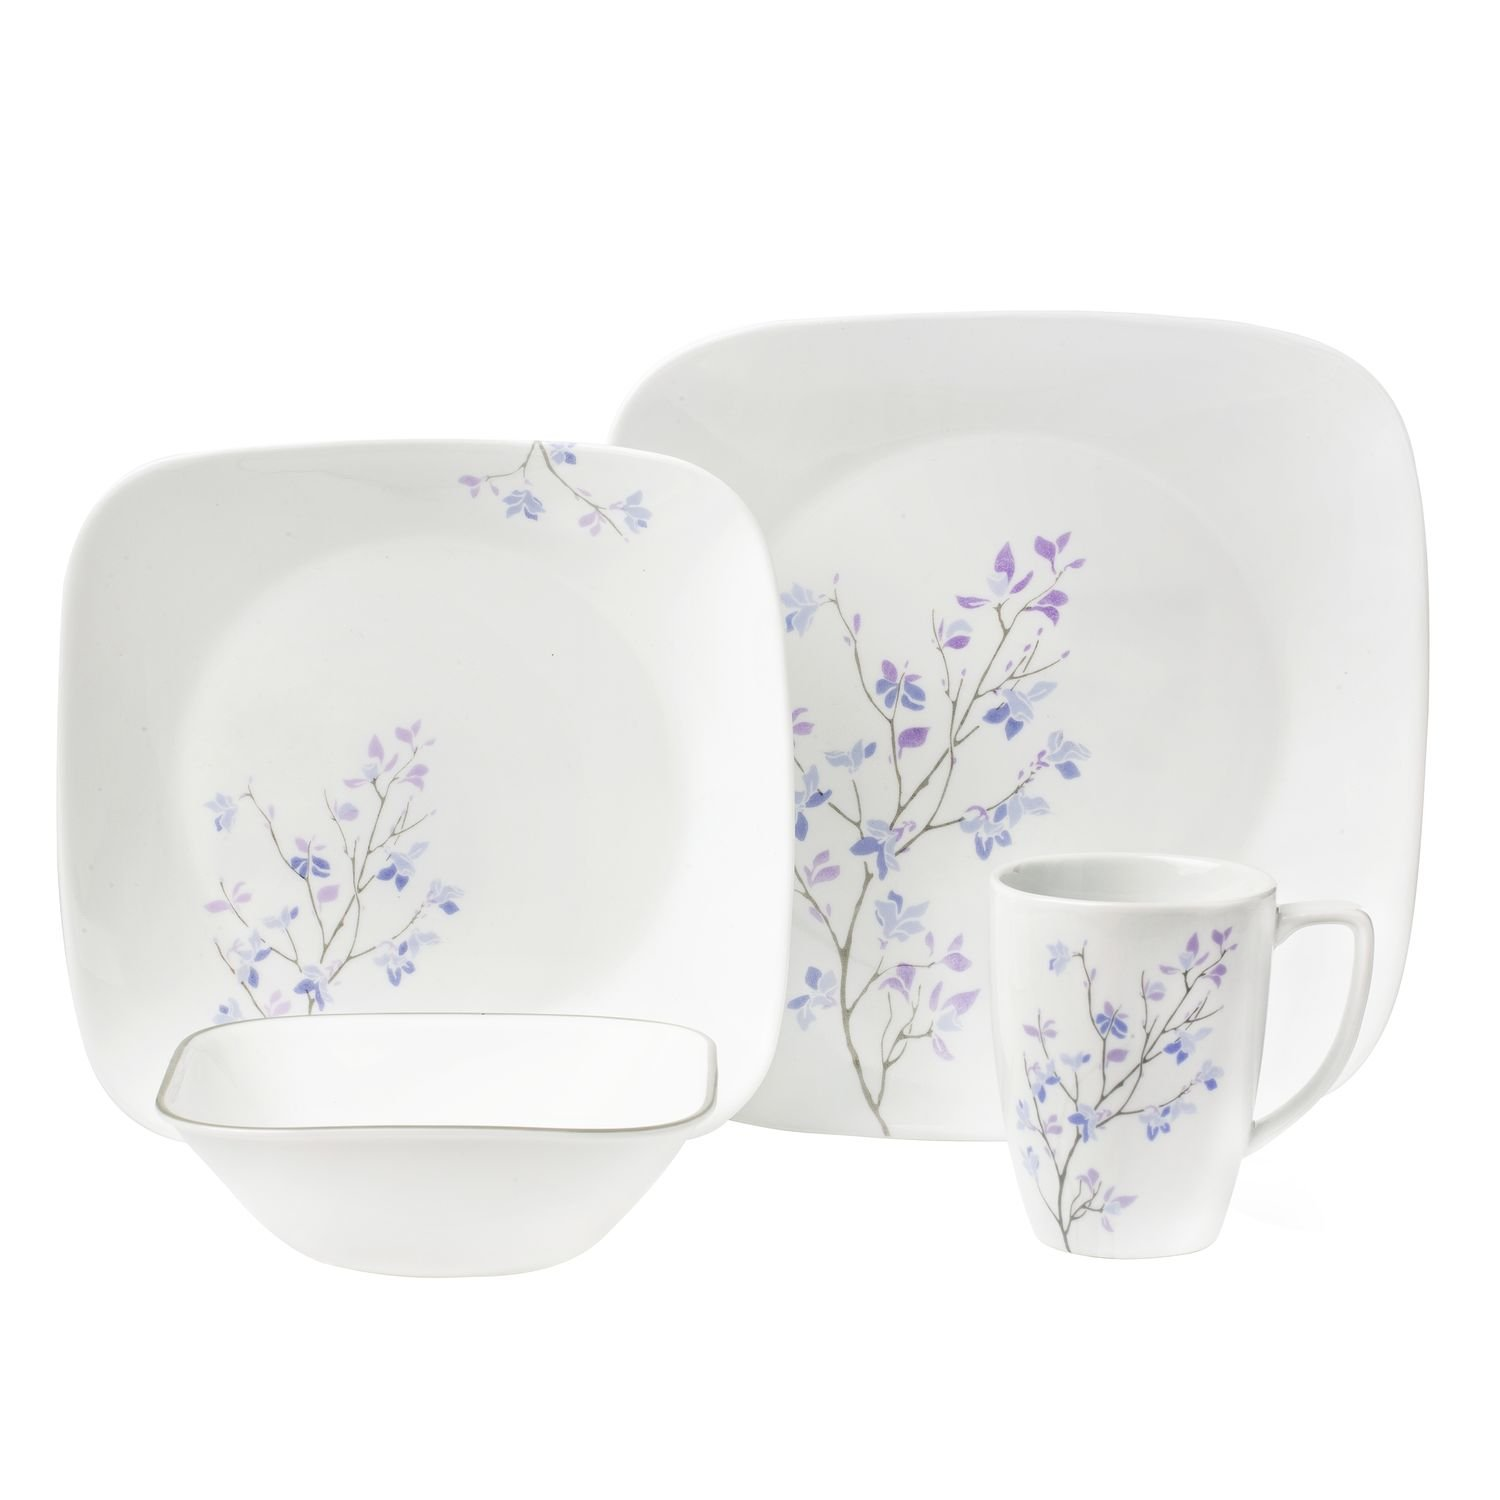 Corelle Square 16-Piece Dinnerware Set, Jacaranda, Service for 4